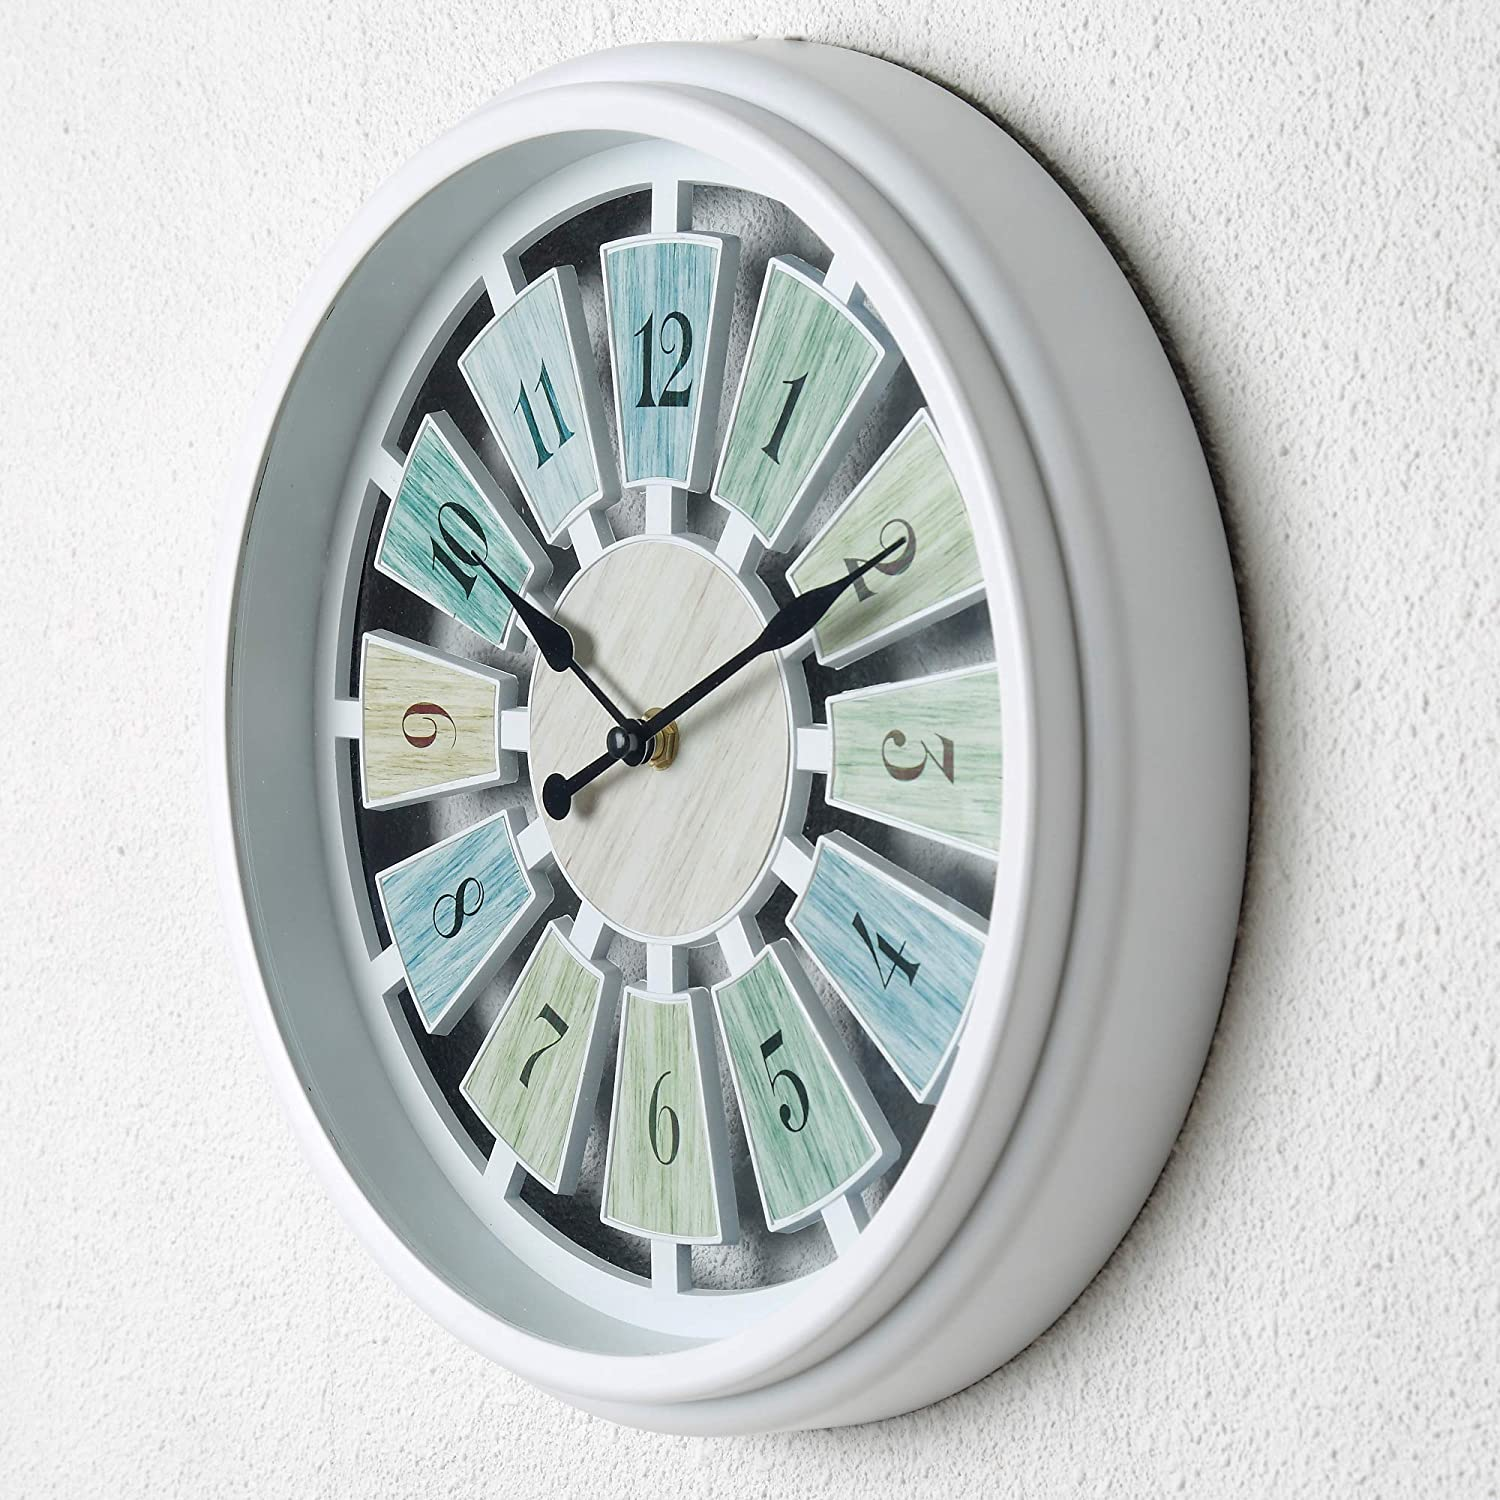 "Tiords Decorative White 12"" Analog Quarts Farmhouse Living Room Wall Clocks, Battery Operated for Kitchen Office Decor Walls"